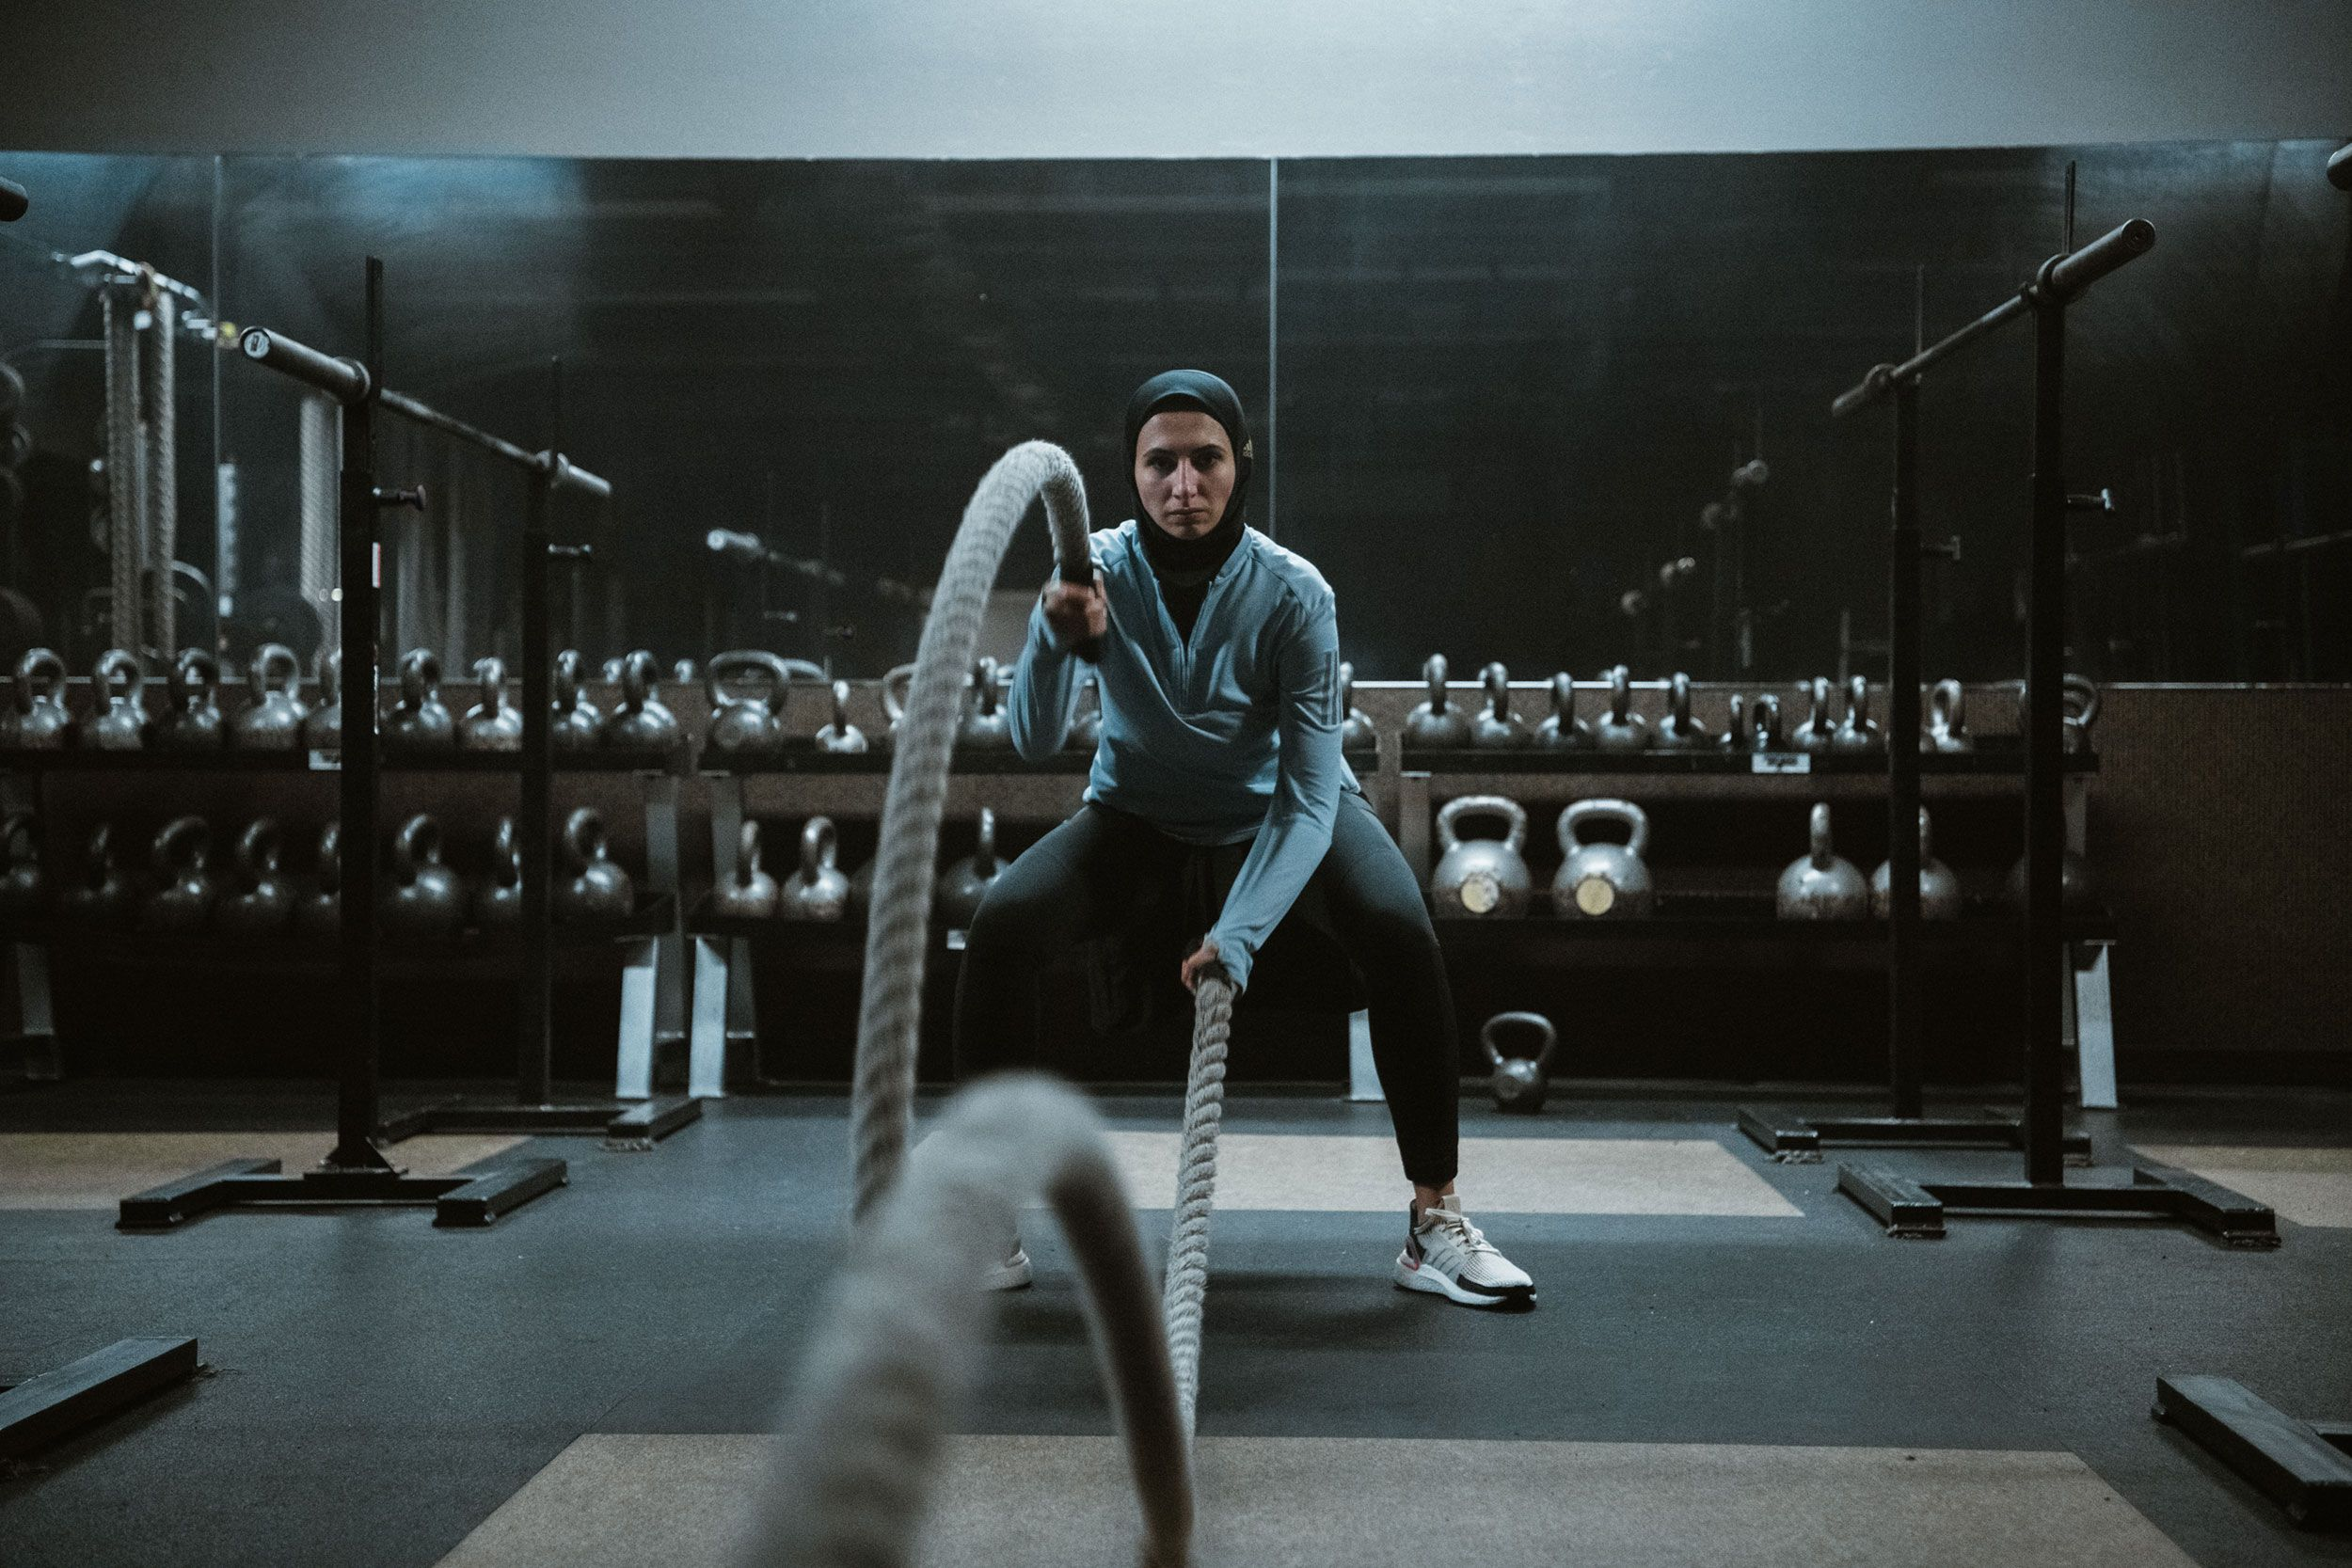 556b93ac2 Adidas Launches Campaign for Equal Media Representation in Sport